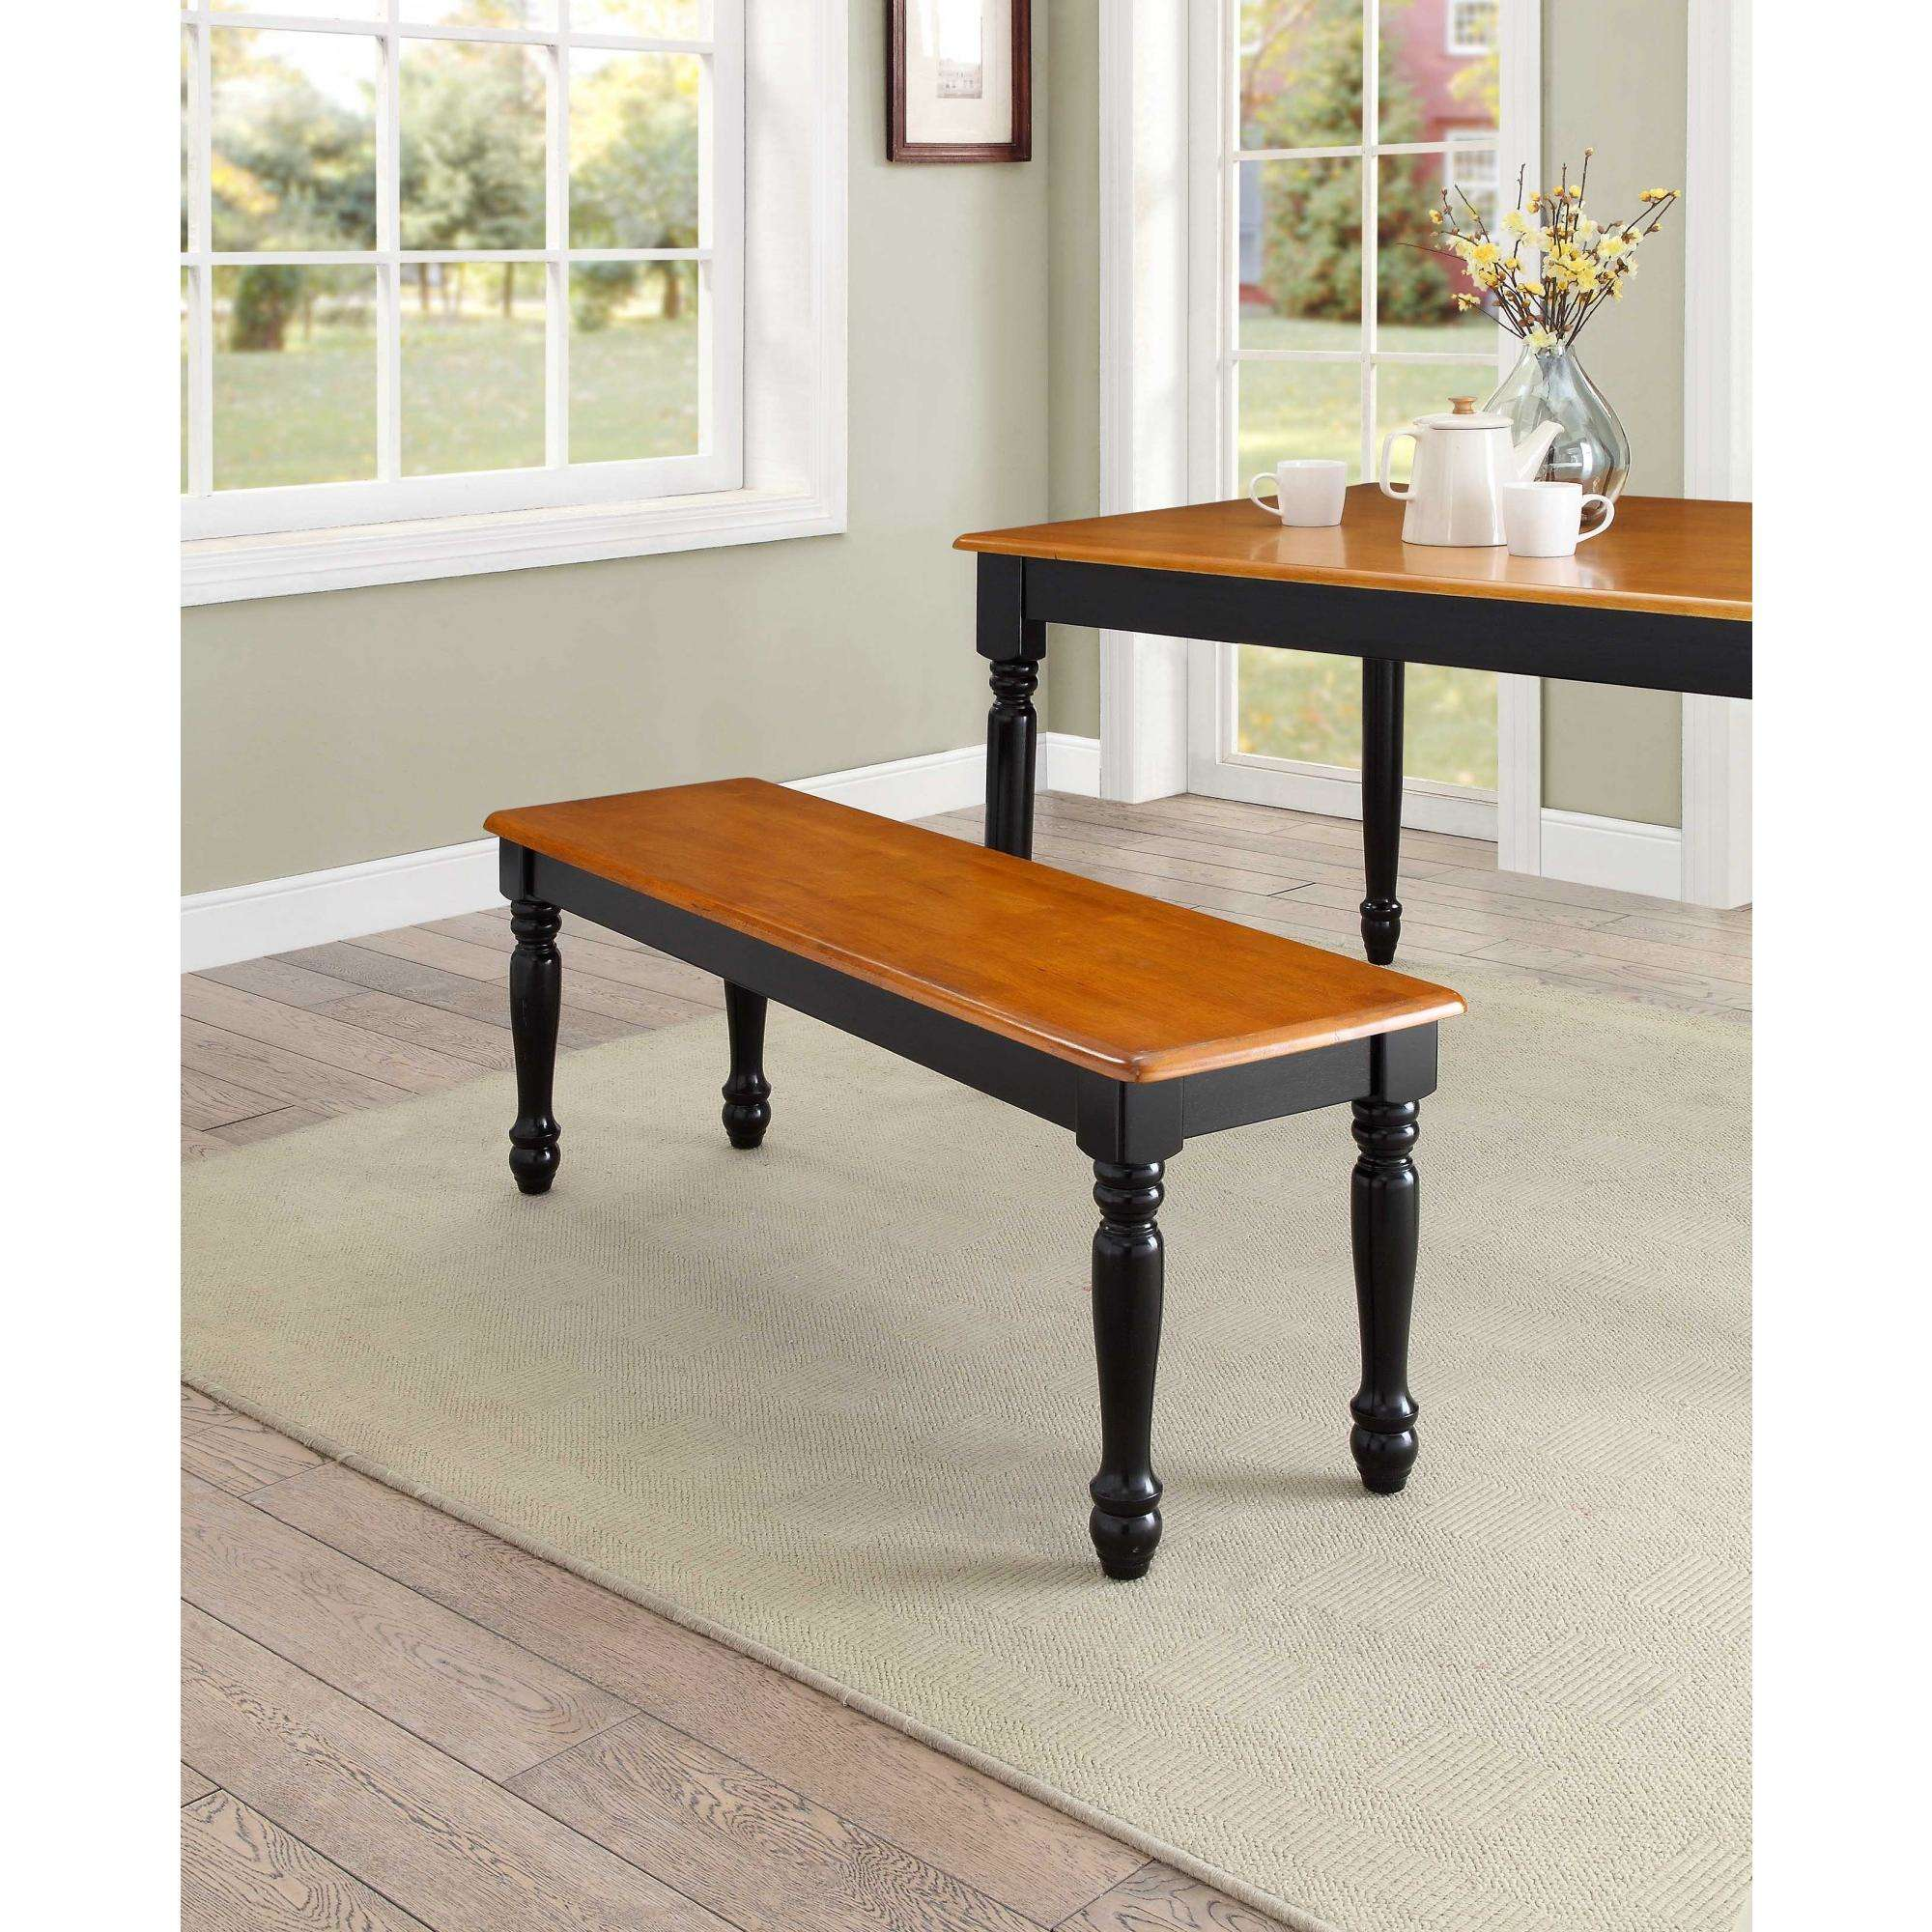 Better Homes & Gardens Autumn Lane Farmhouse Solid Wood Dining Bench, Multiple Colors